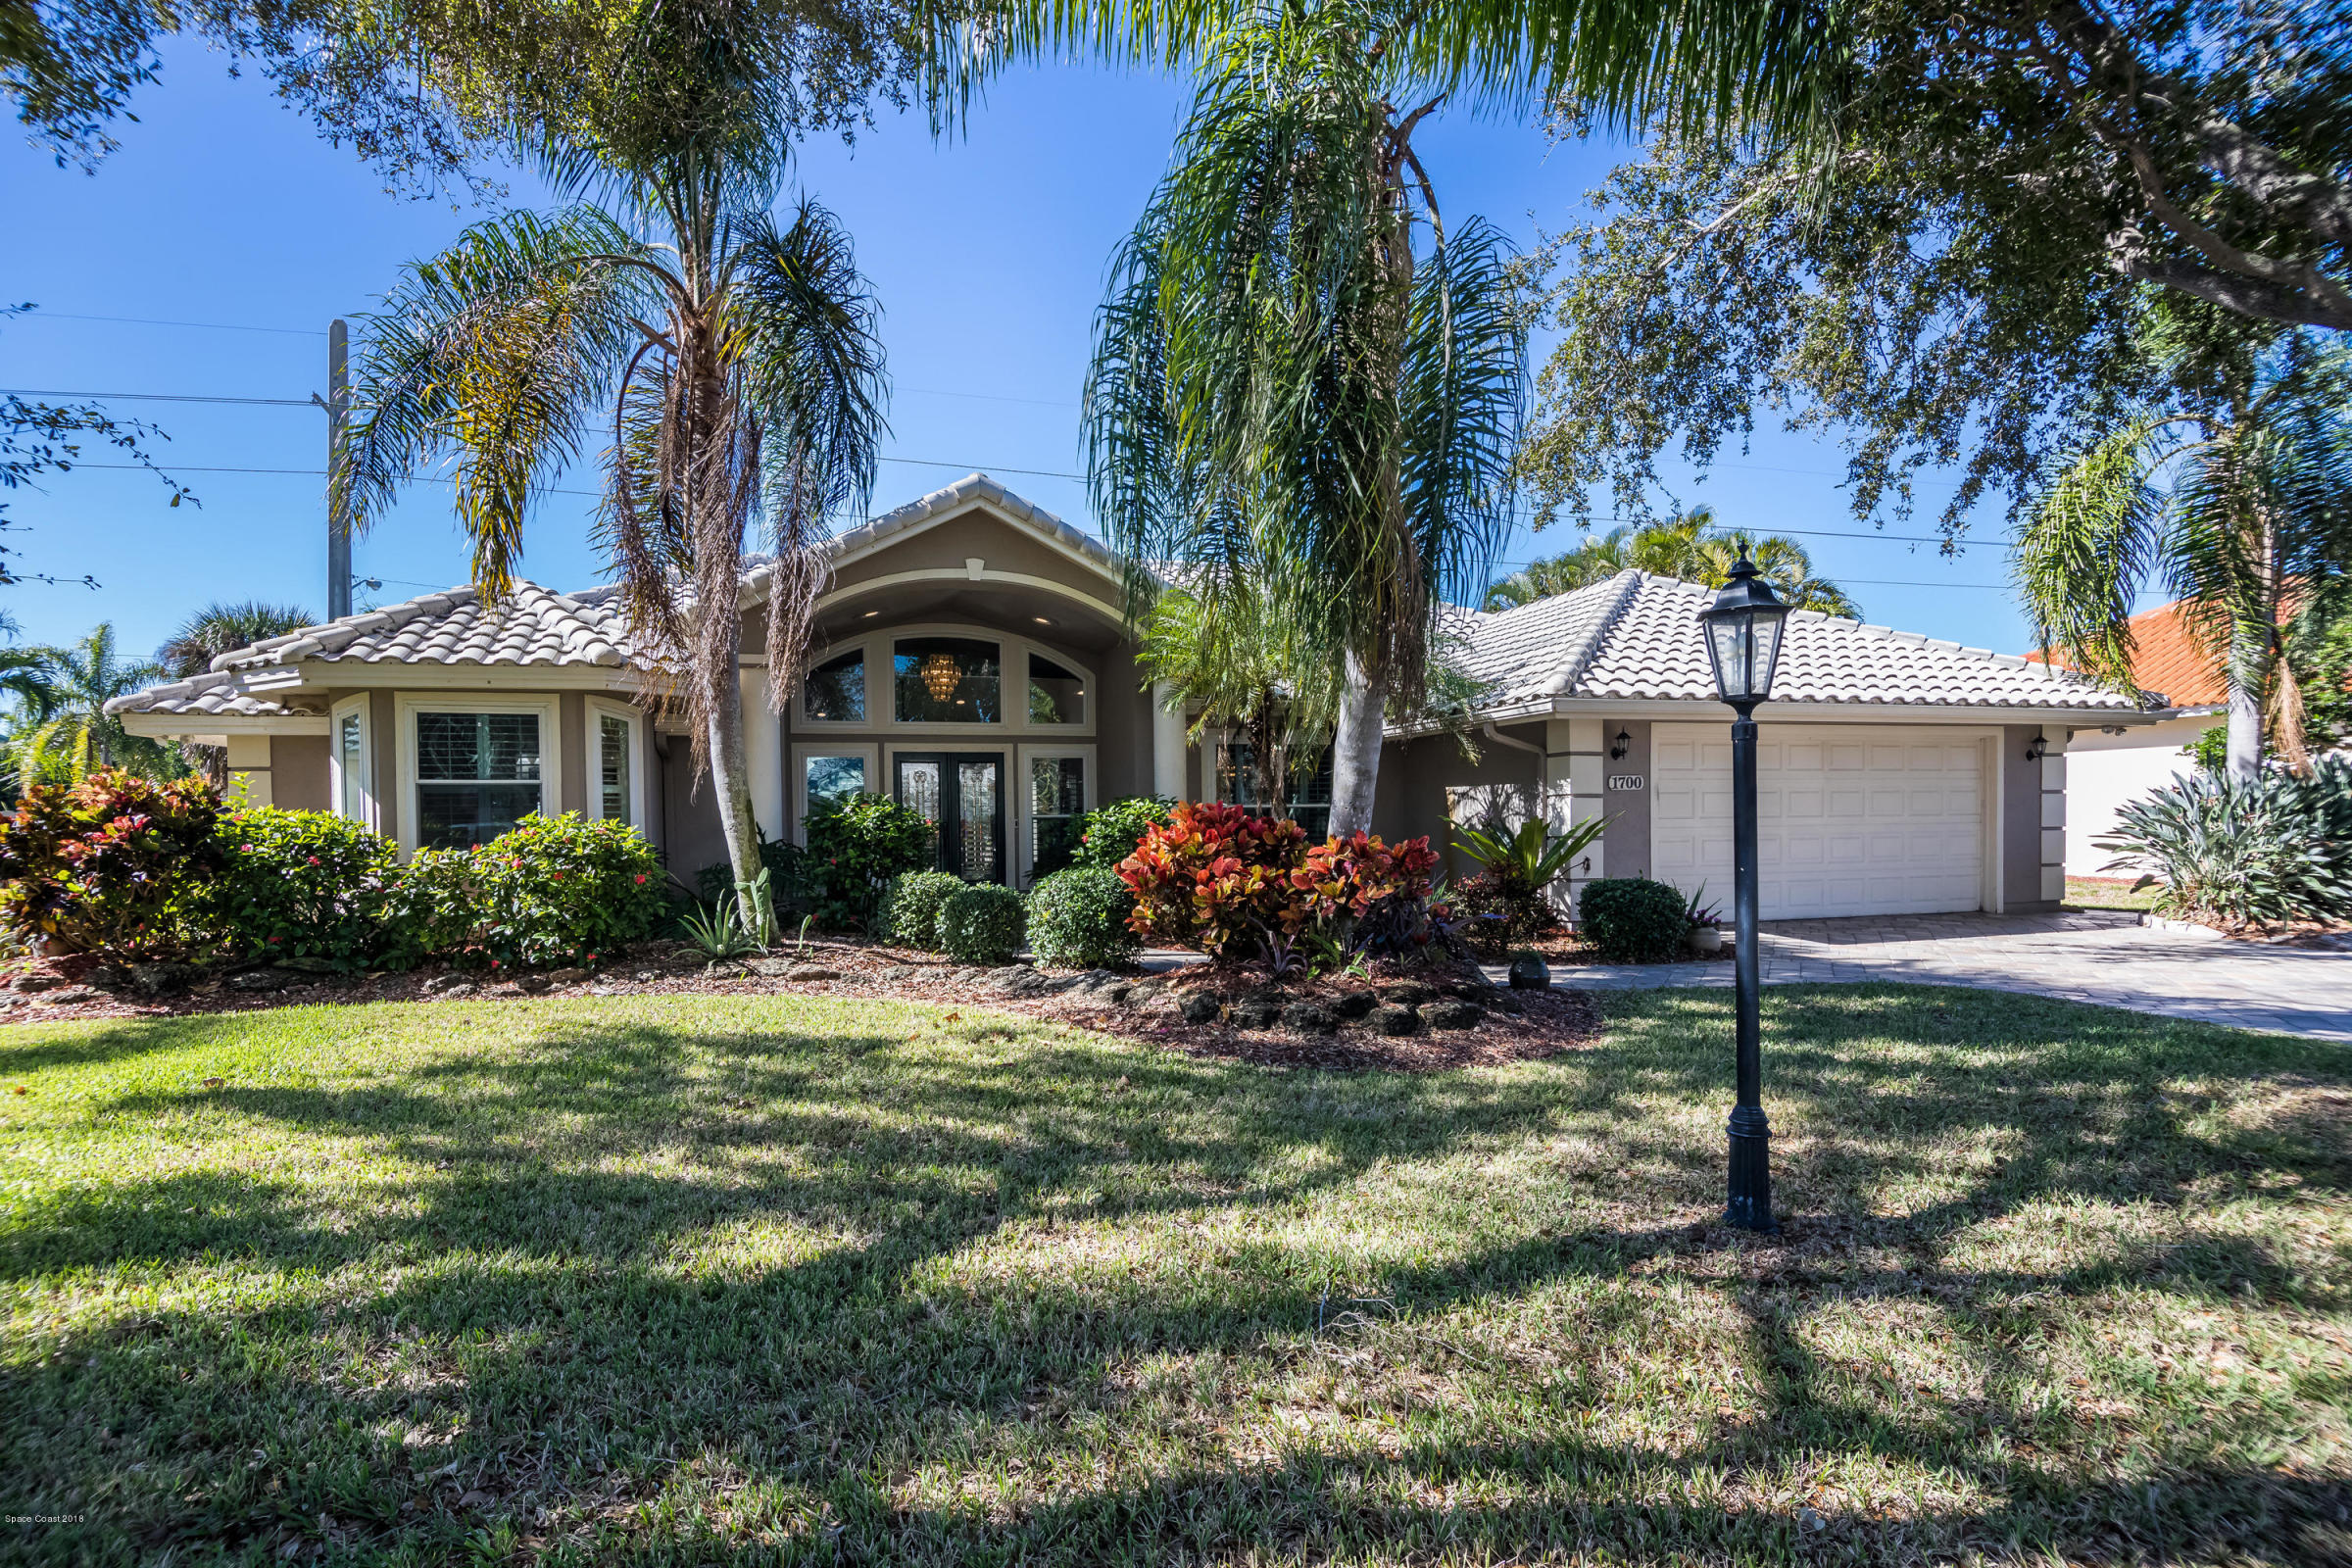 1700 Canterbury Dr Indialantic, FL 32903. Sold by Brent Burns